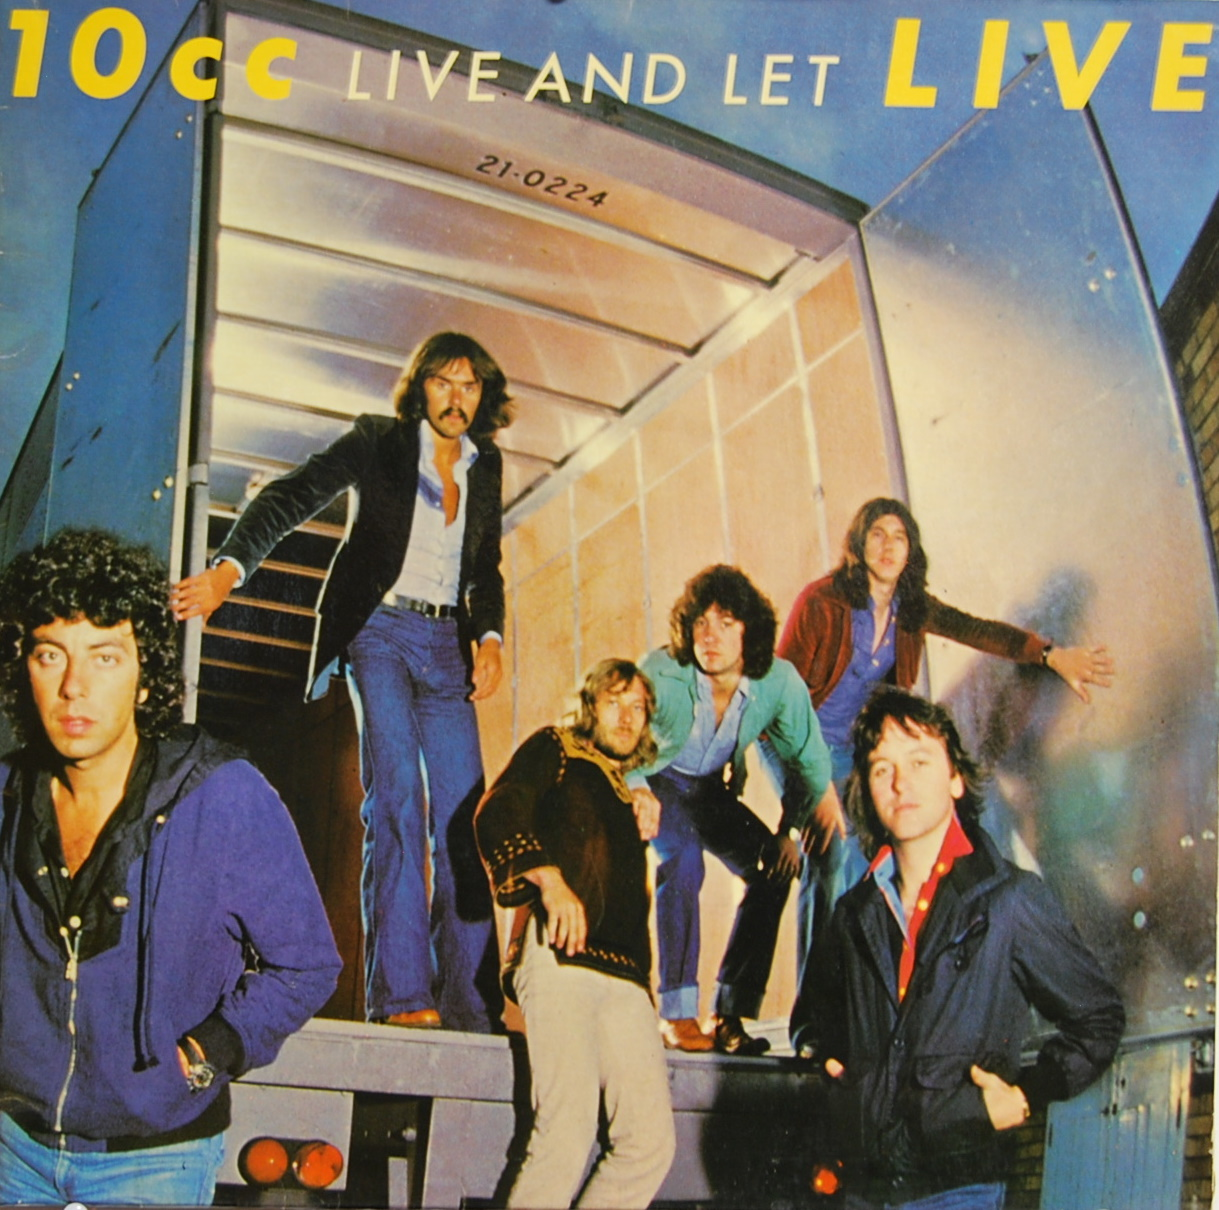 10cc Live And Let Live Vinyl